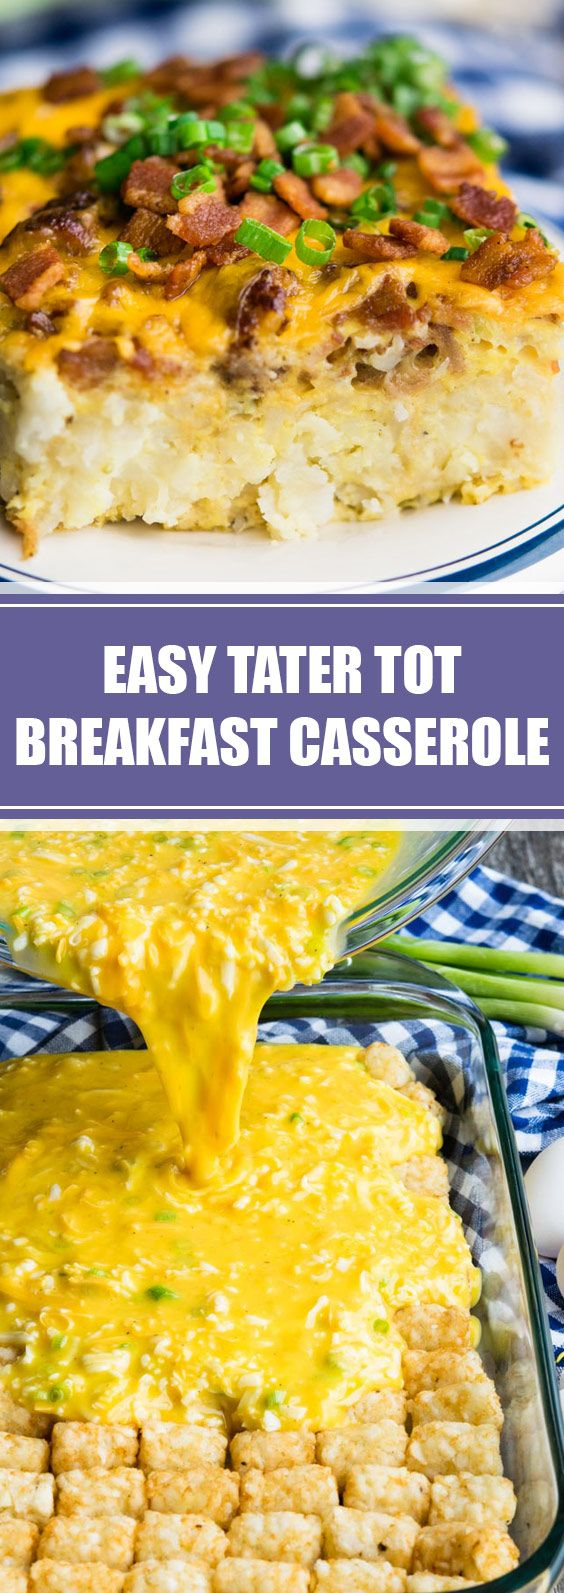 Easy Tater Tot Breakfast Casserole   Our Easy Tater Tot Breakfast Casserole take...